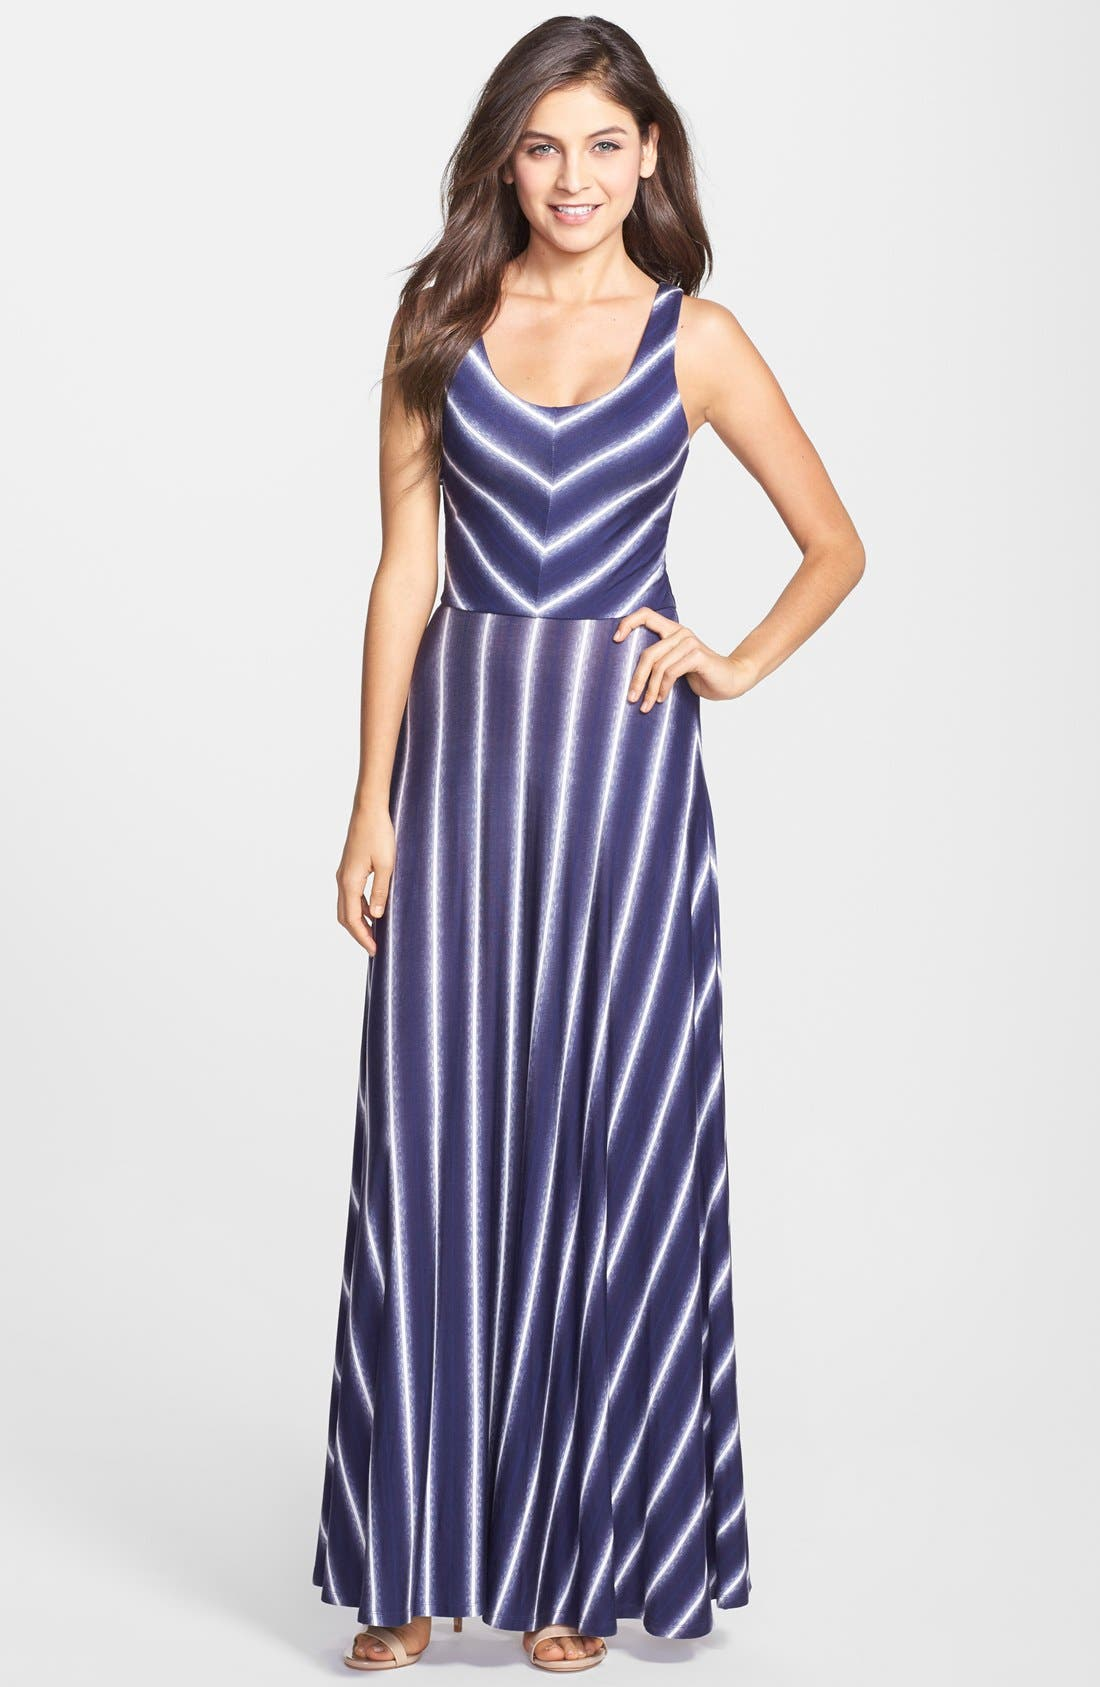 Alternate Image 1 Selected - Felicity & Coco Stripe Scoop Neck Maxi Dress (Nordstrom Exclusive)